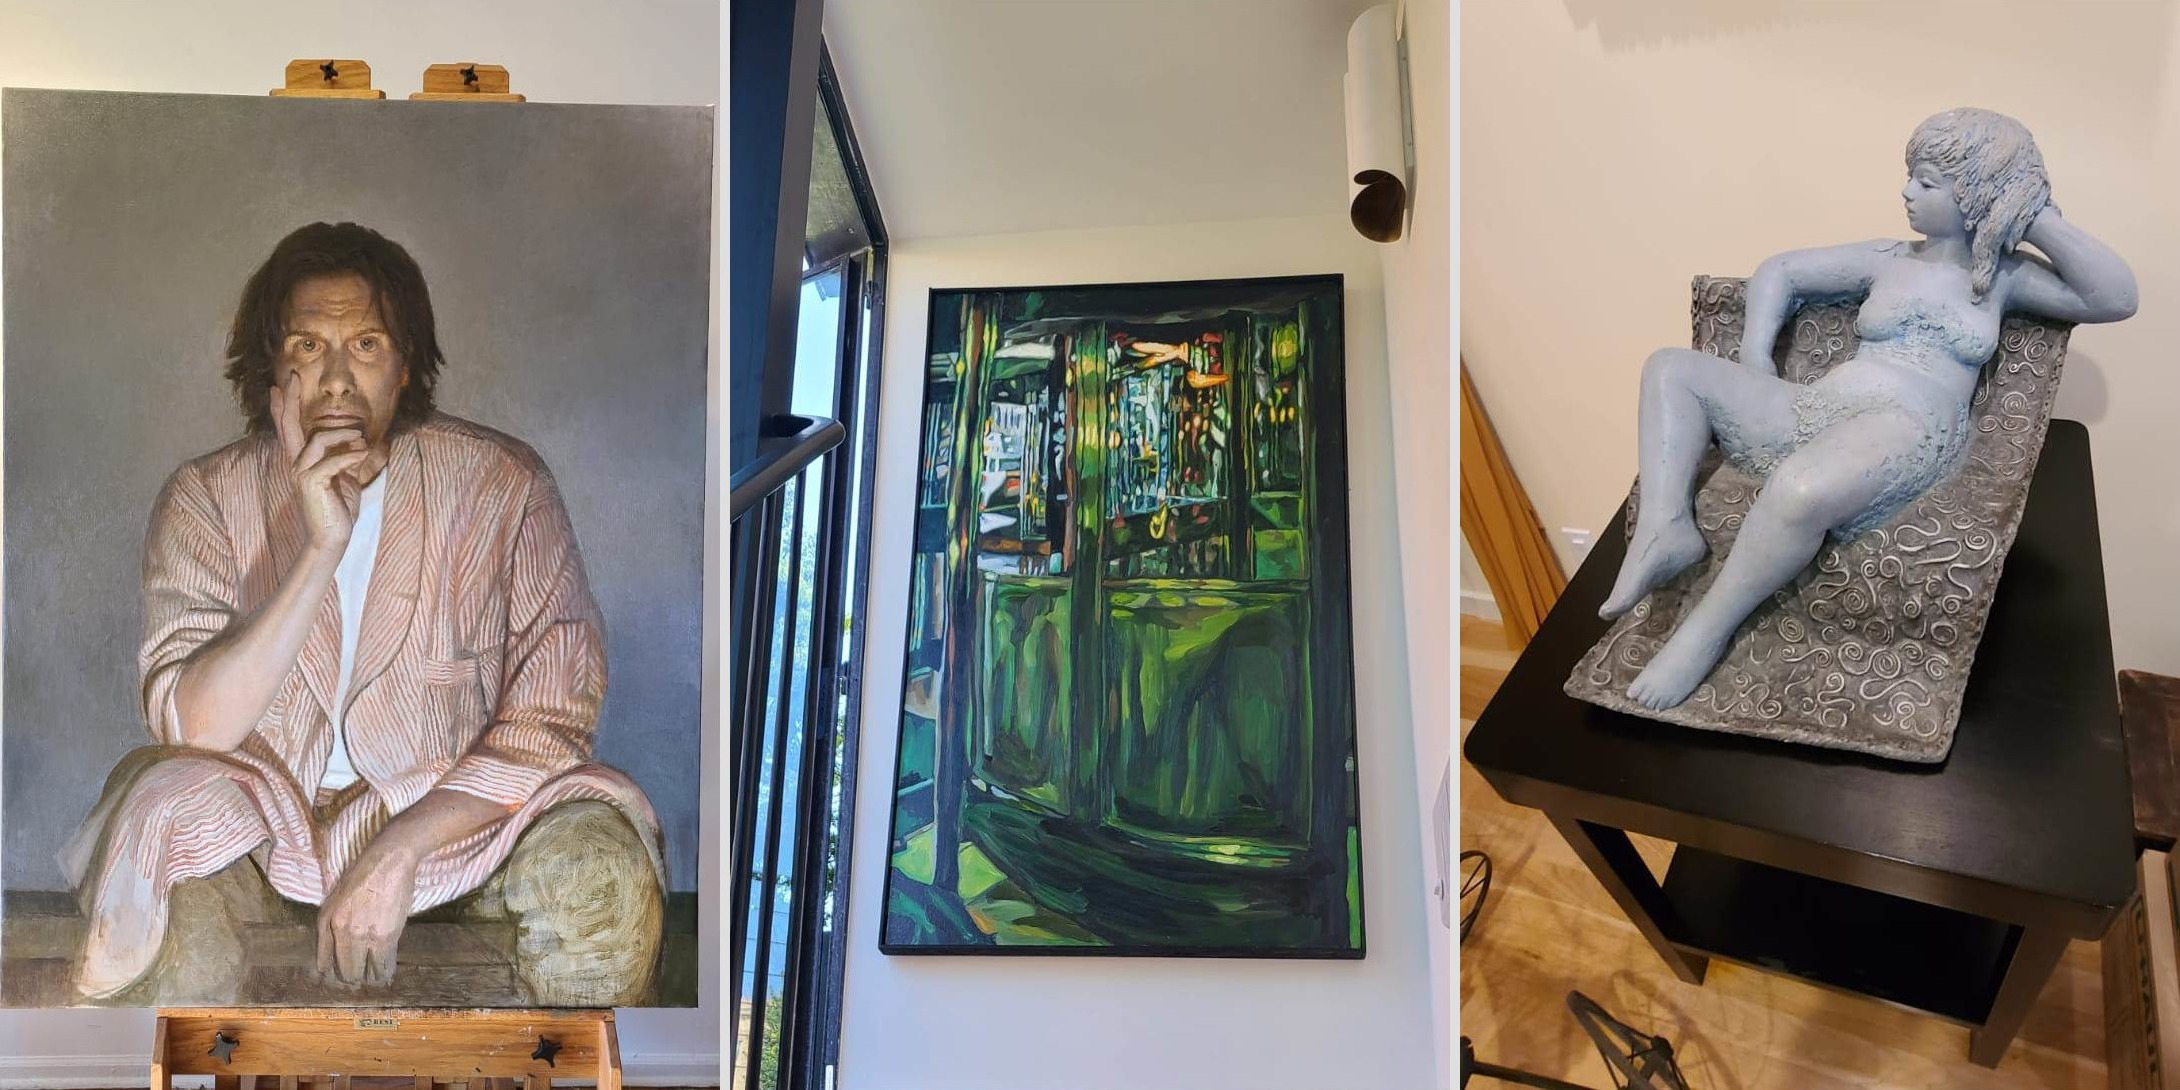 White Glove Shipping & Installation Services for Fine Art